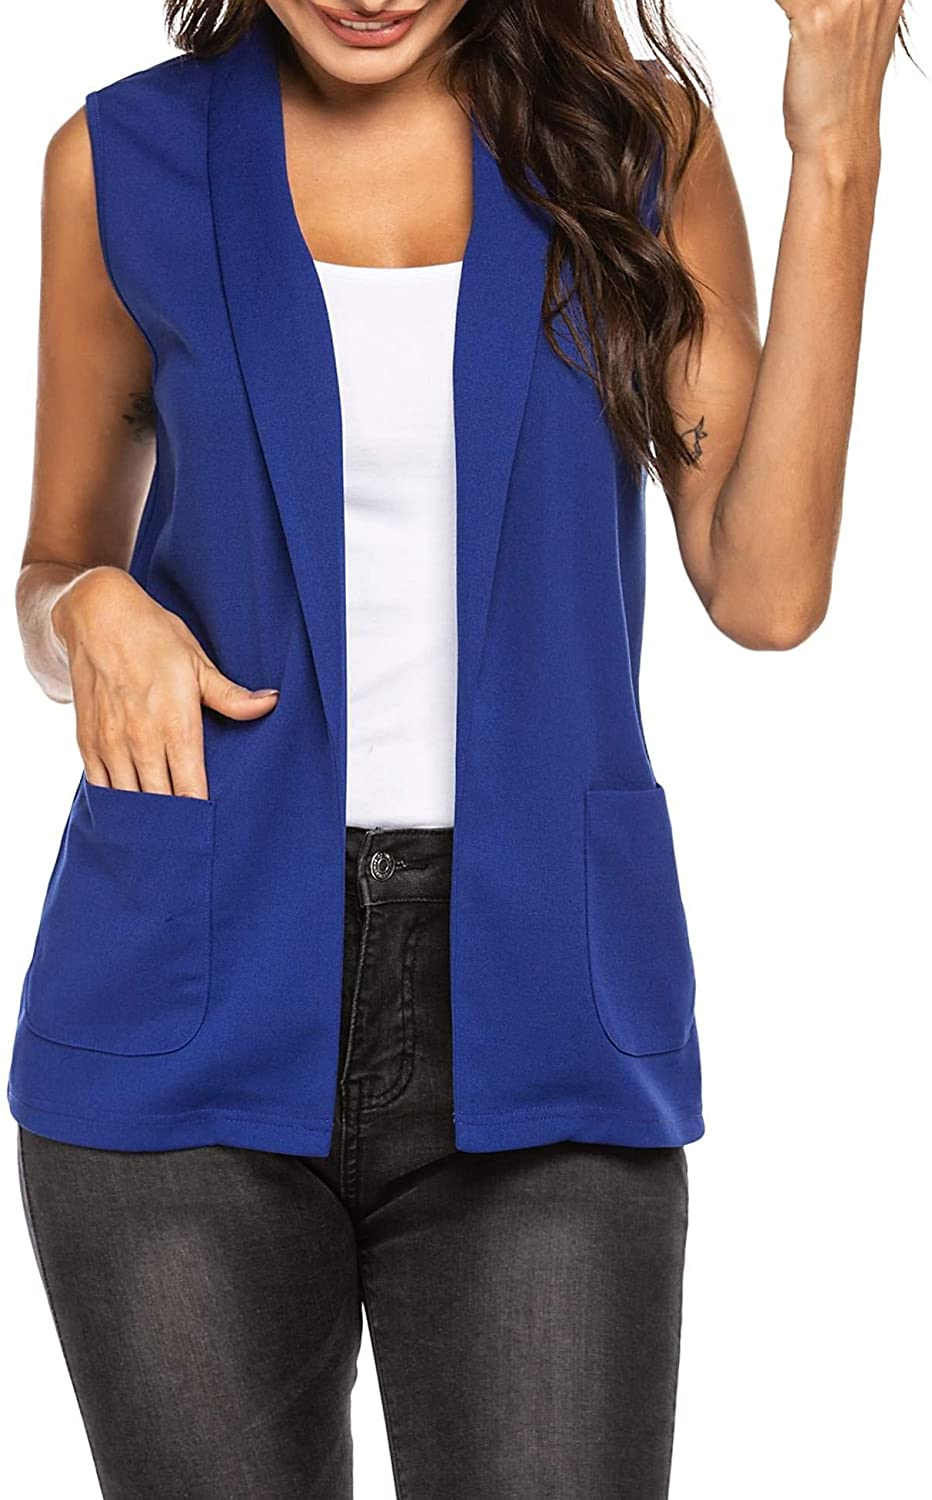 Pinspark Women Open Front Work Office Vest Casual Sleeveless Blazer with Pockets